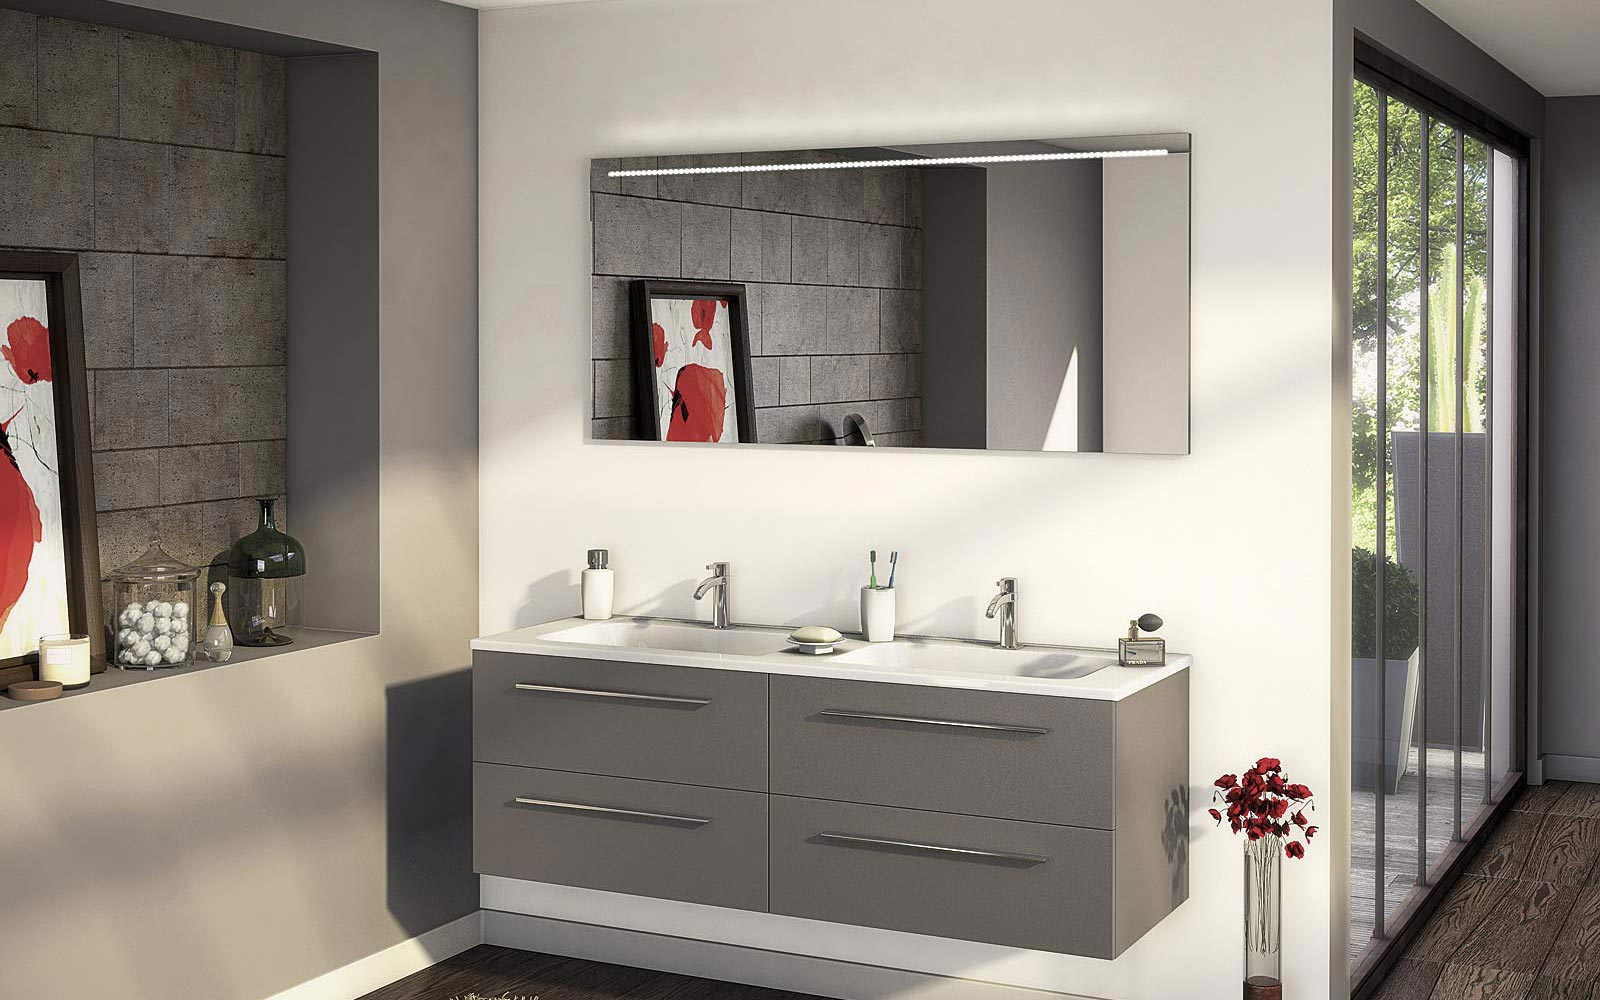 Meuble vasque cedeo for Mobilier salle de bain design